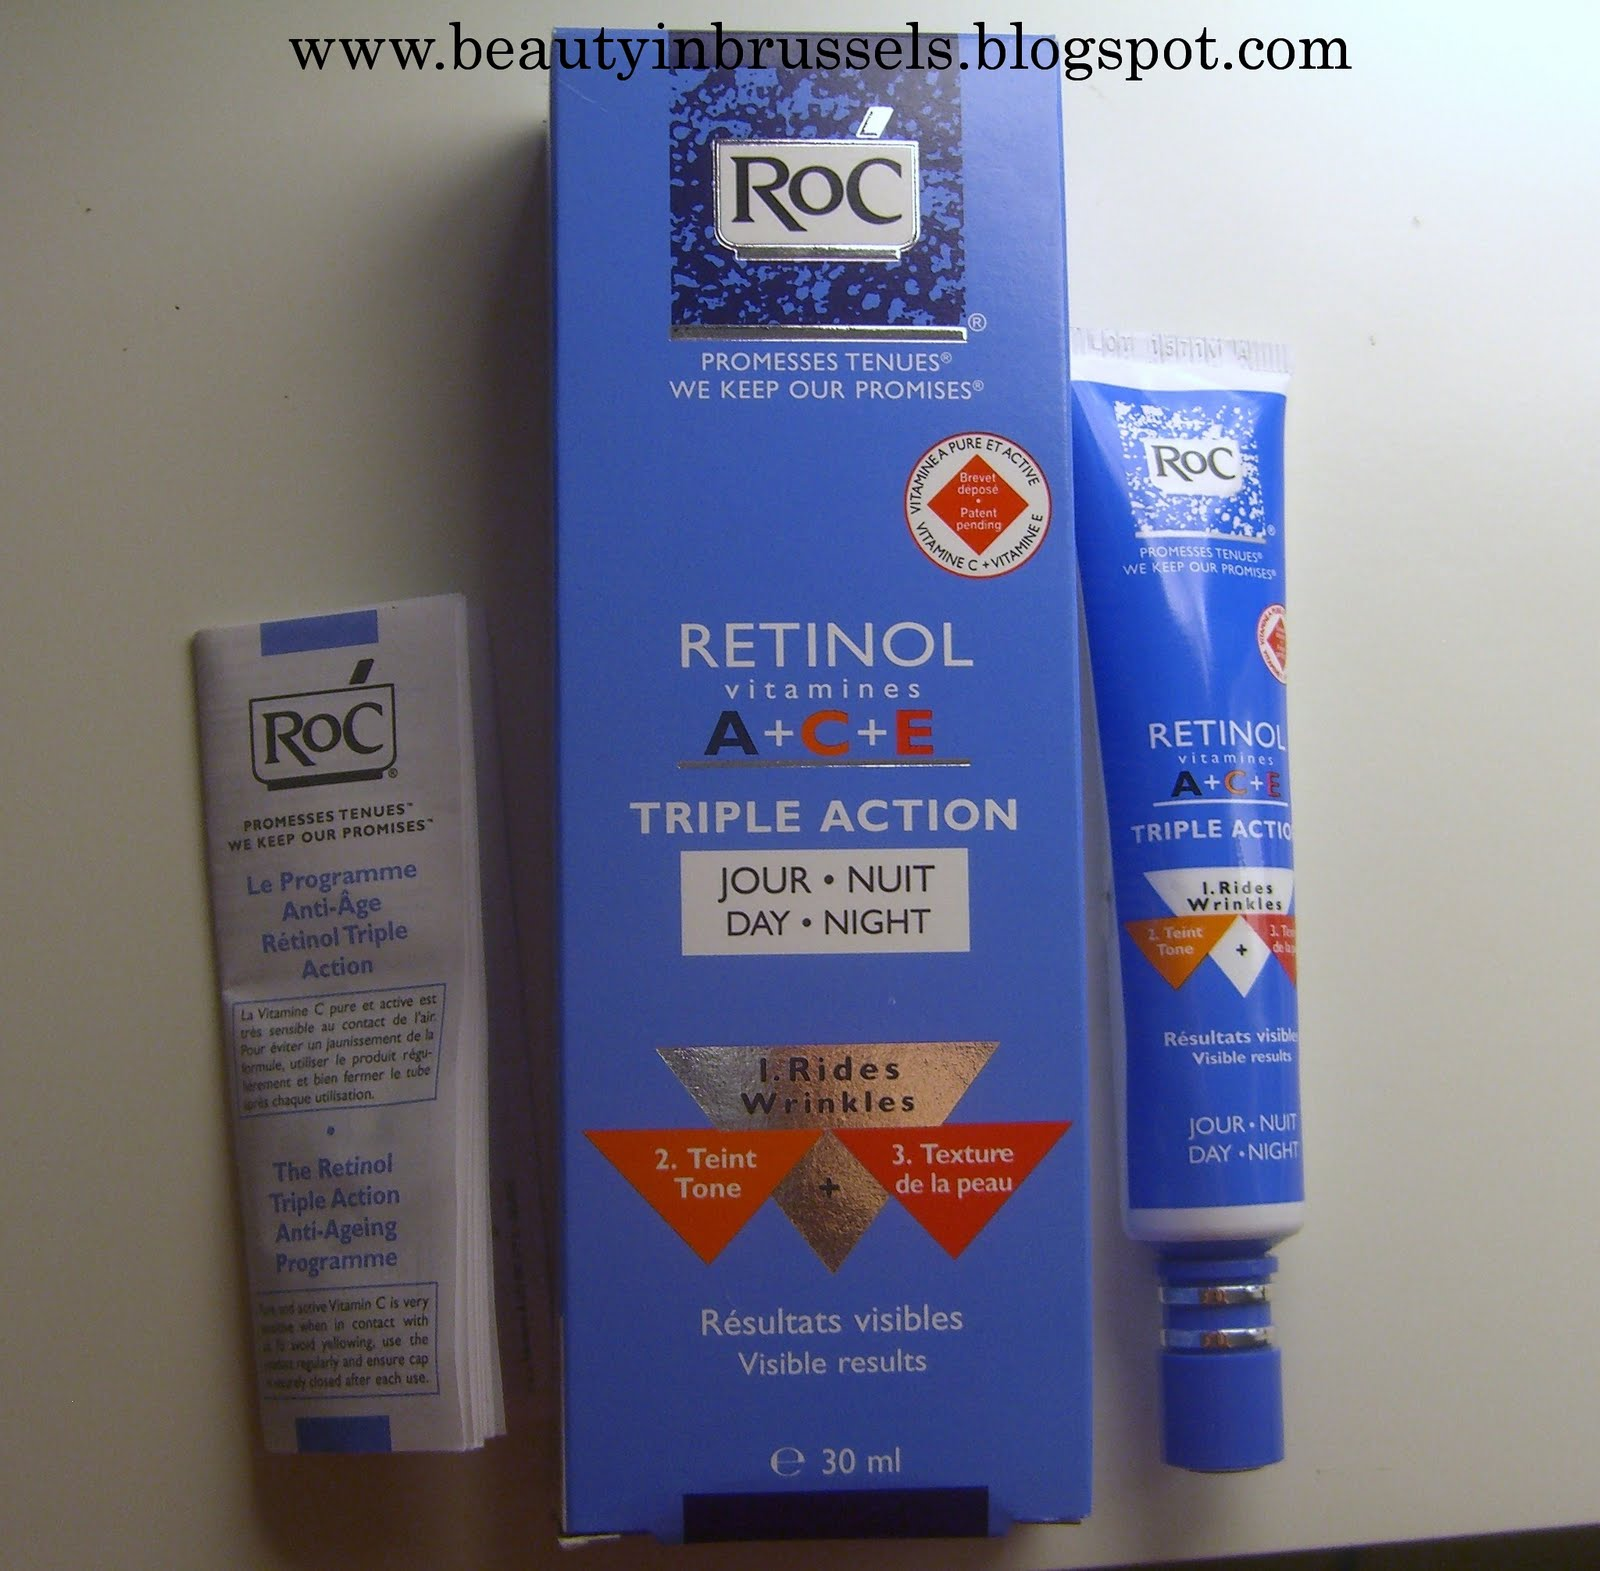 Beauty in Brussels: ROC Retinol vitamines A+C+E trile action